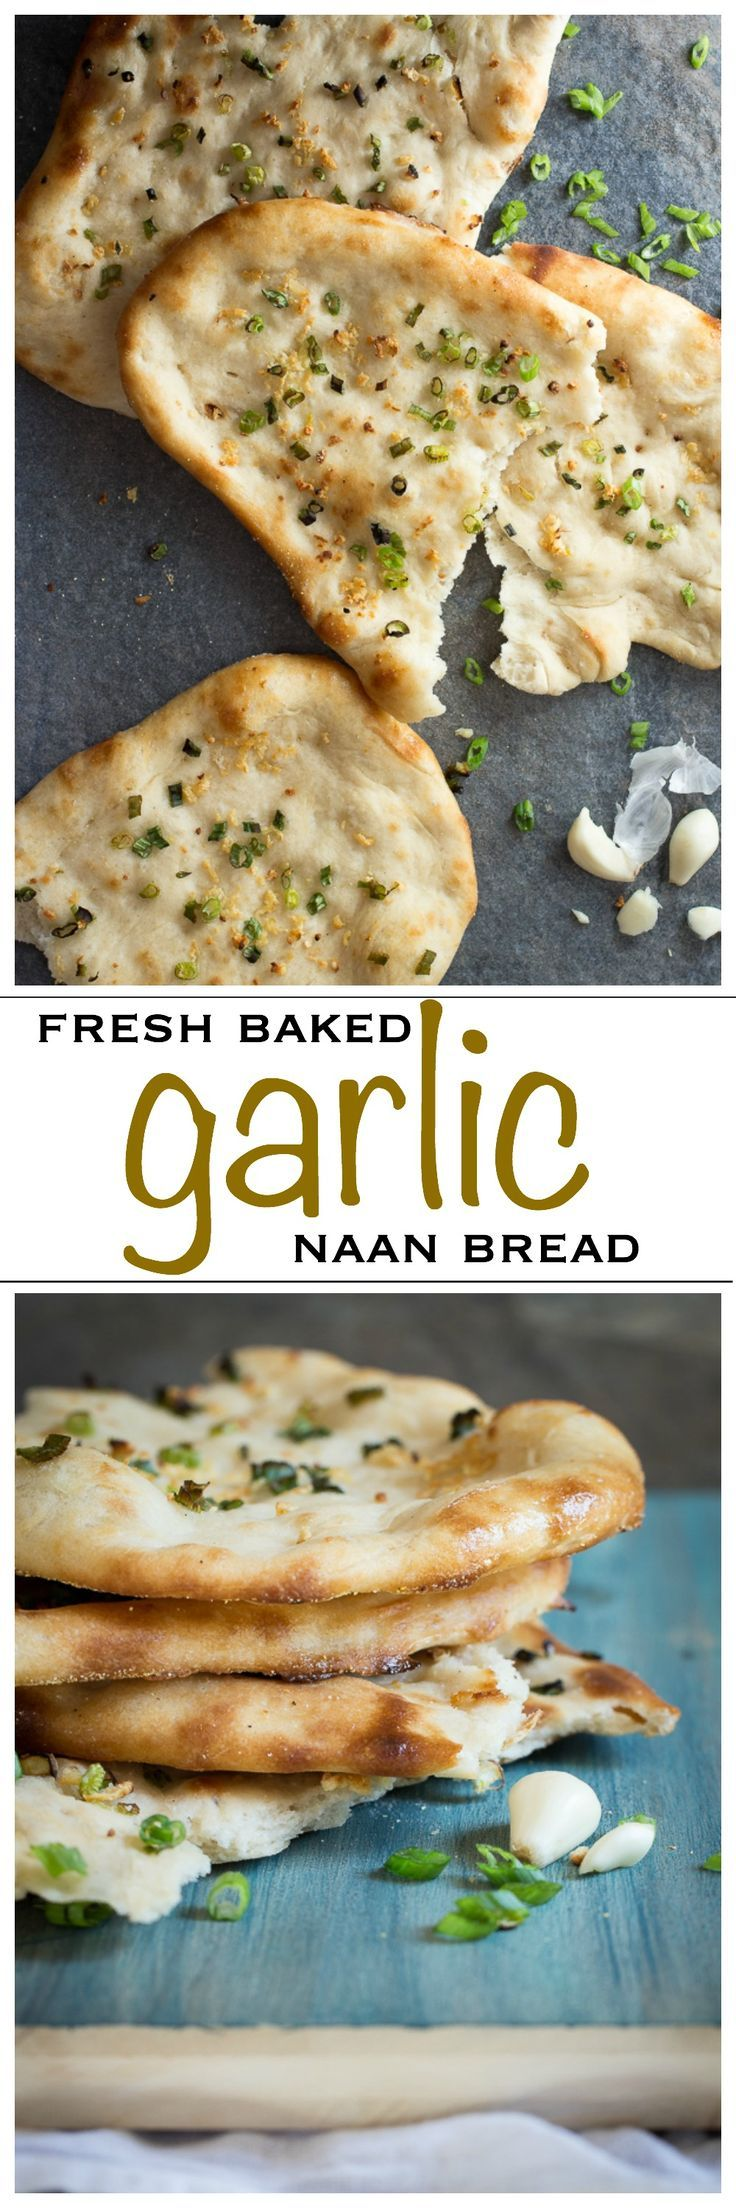 Fresh Baked Homemade Garlic Naan Bread | Foodness Gracious